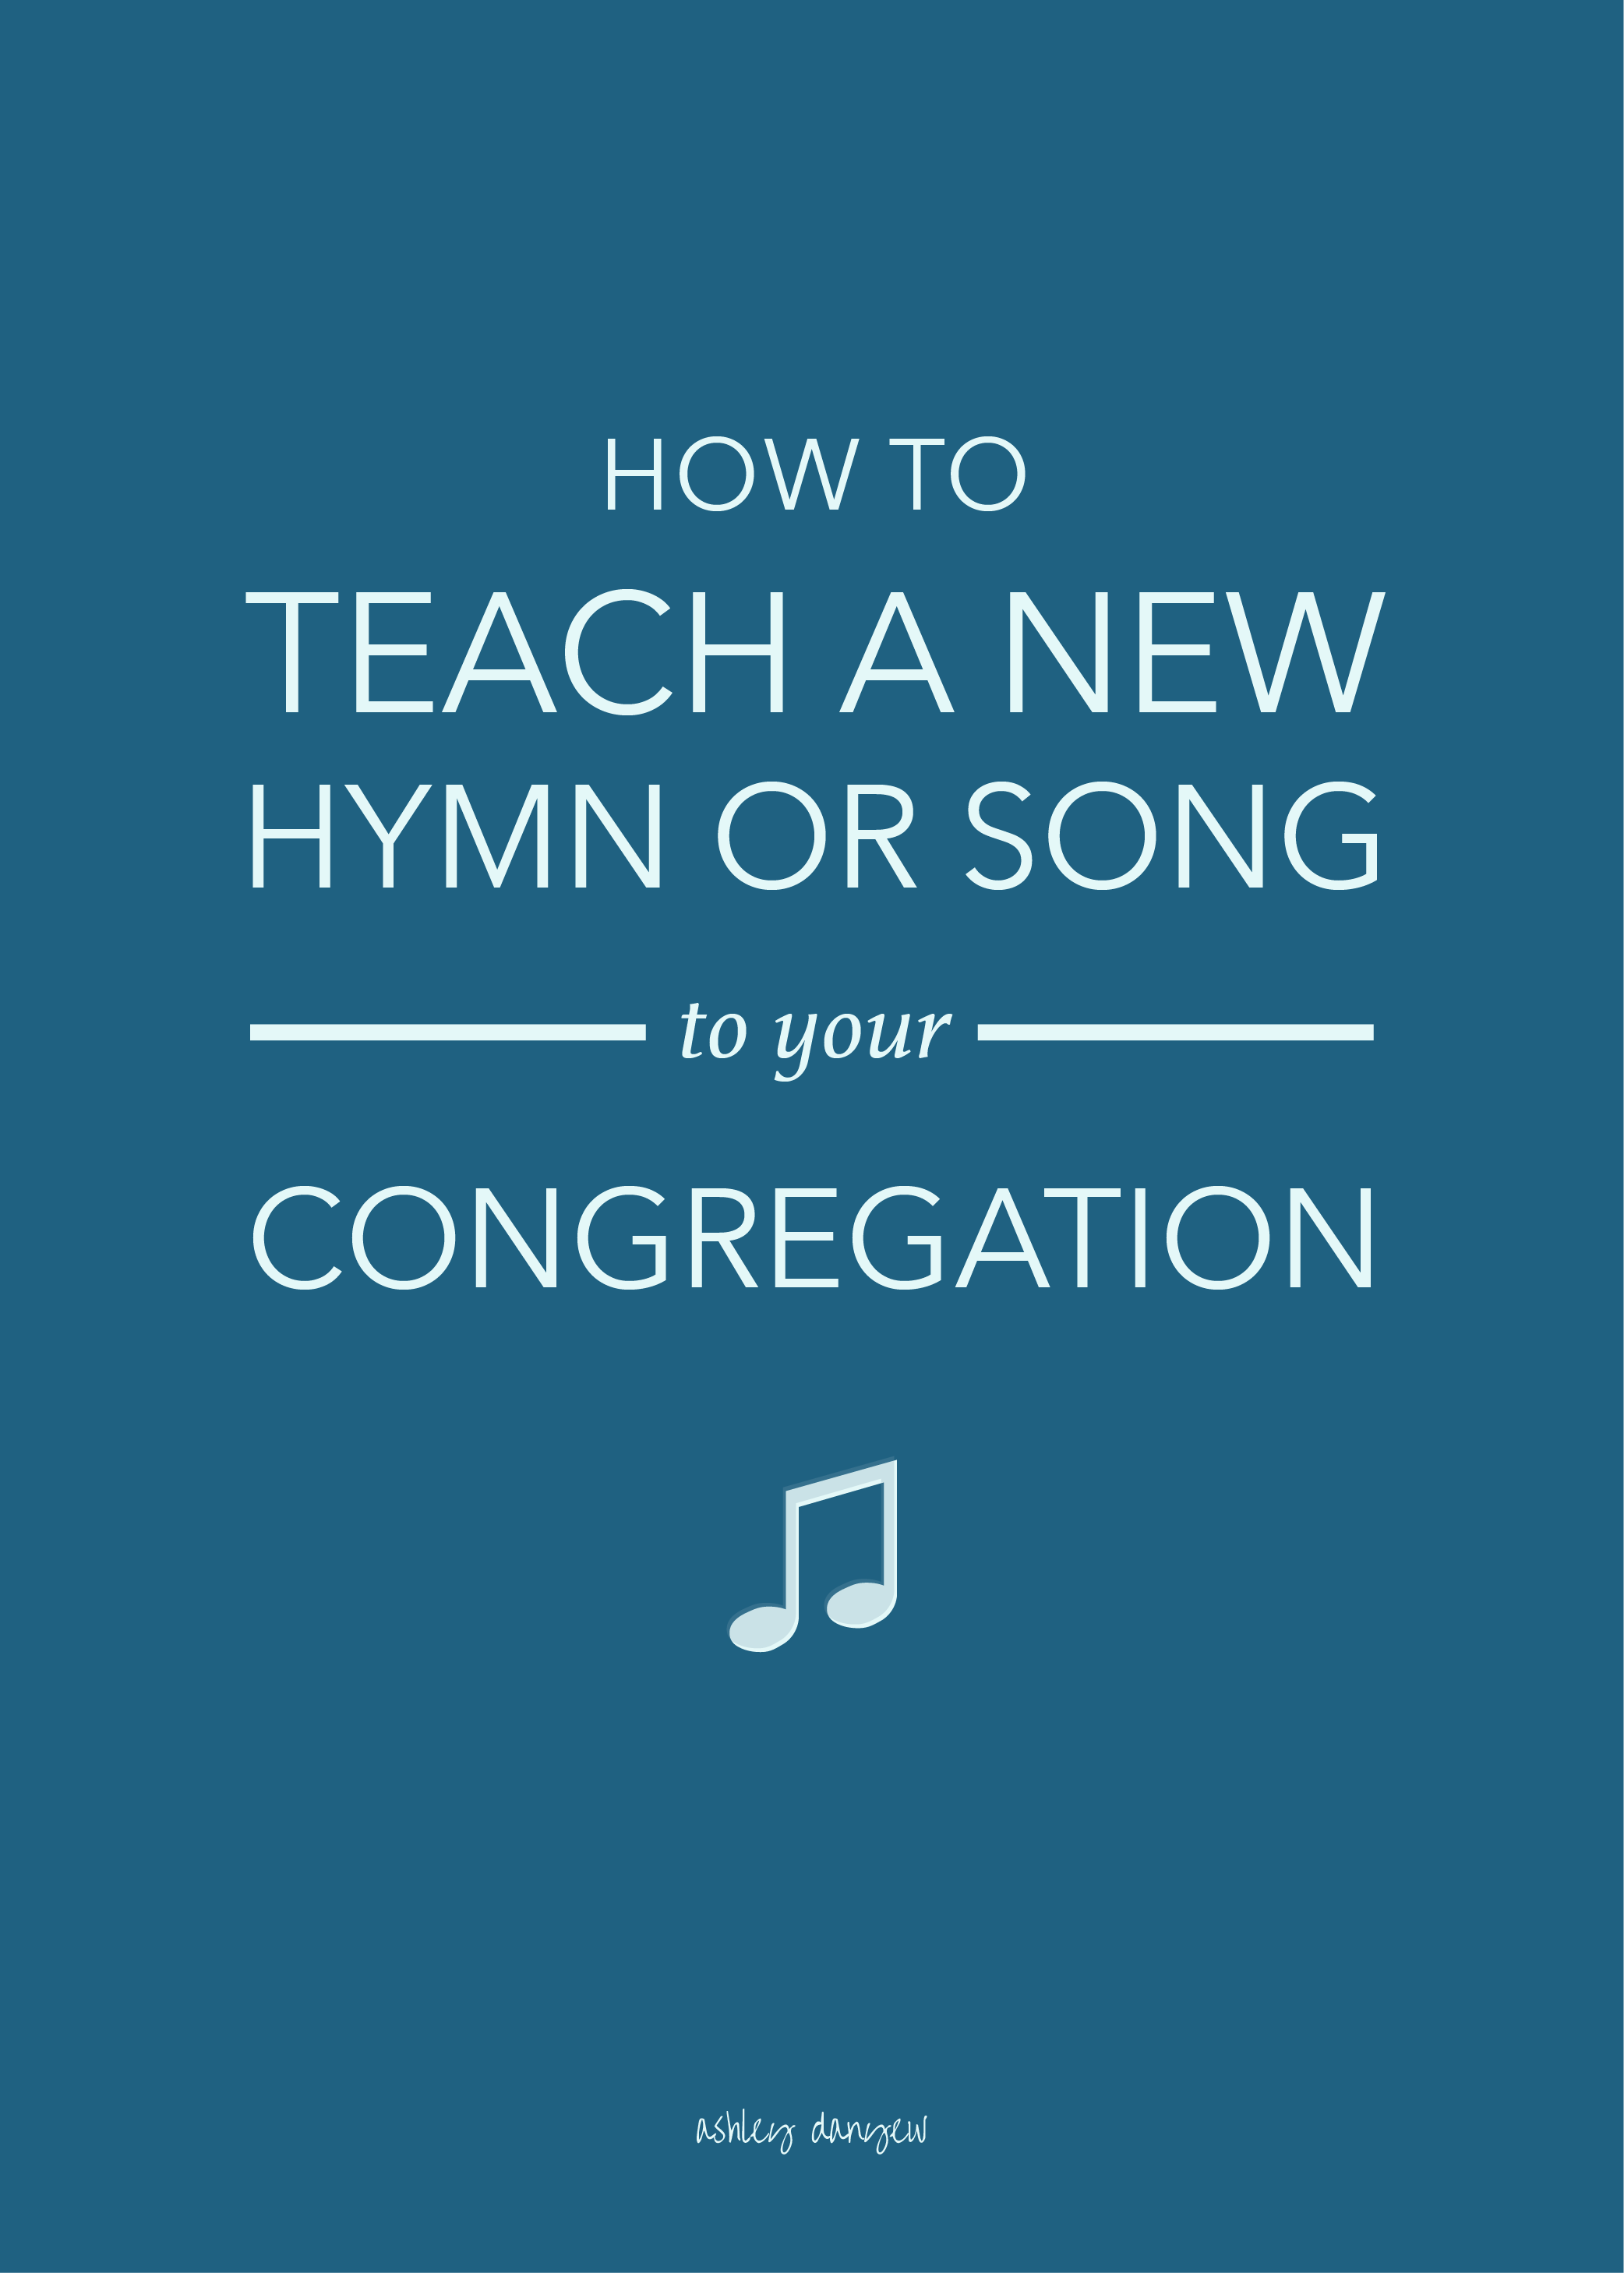 How to Teach a New Hymn or Song to Your Congregation-01.png